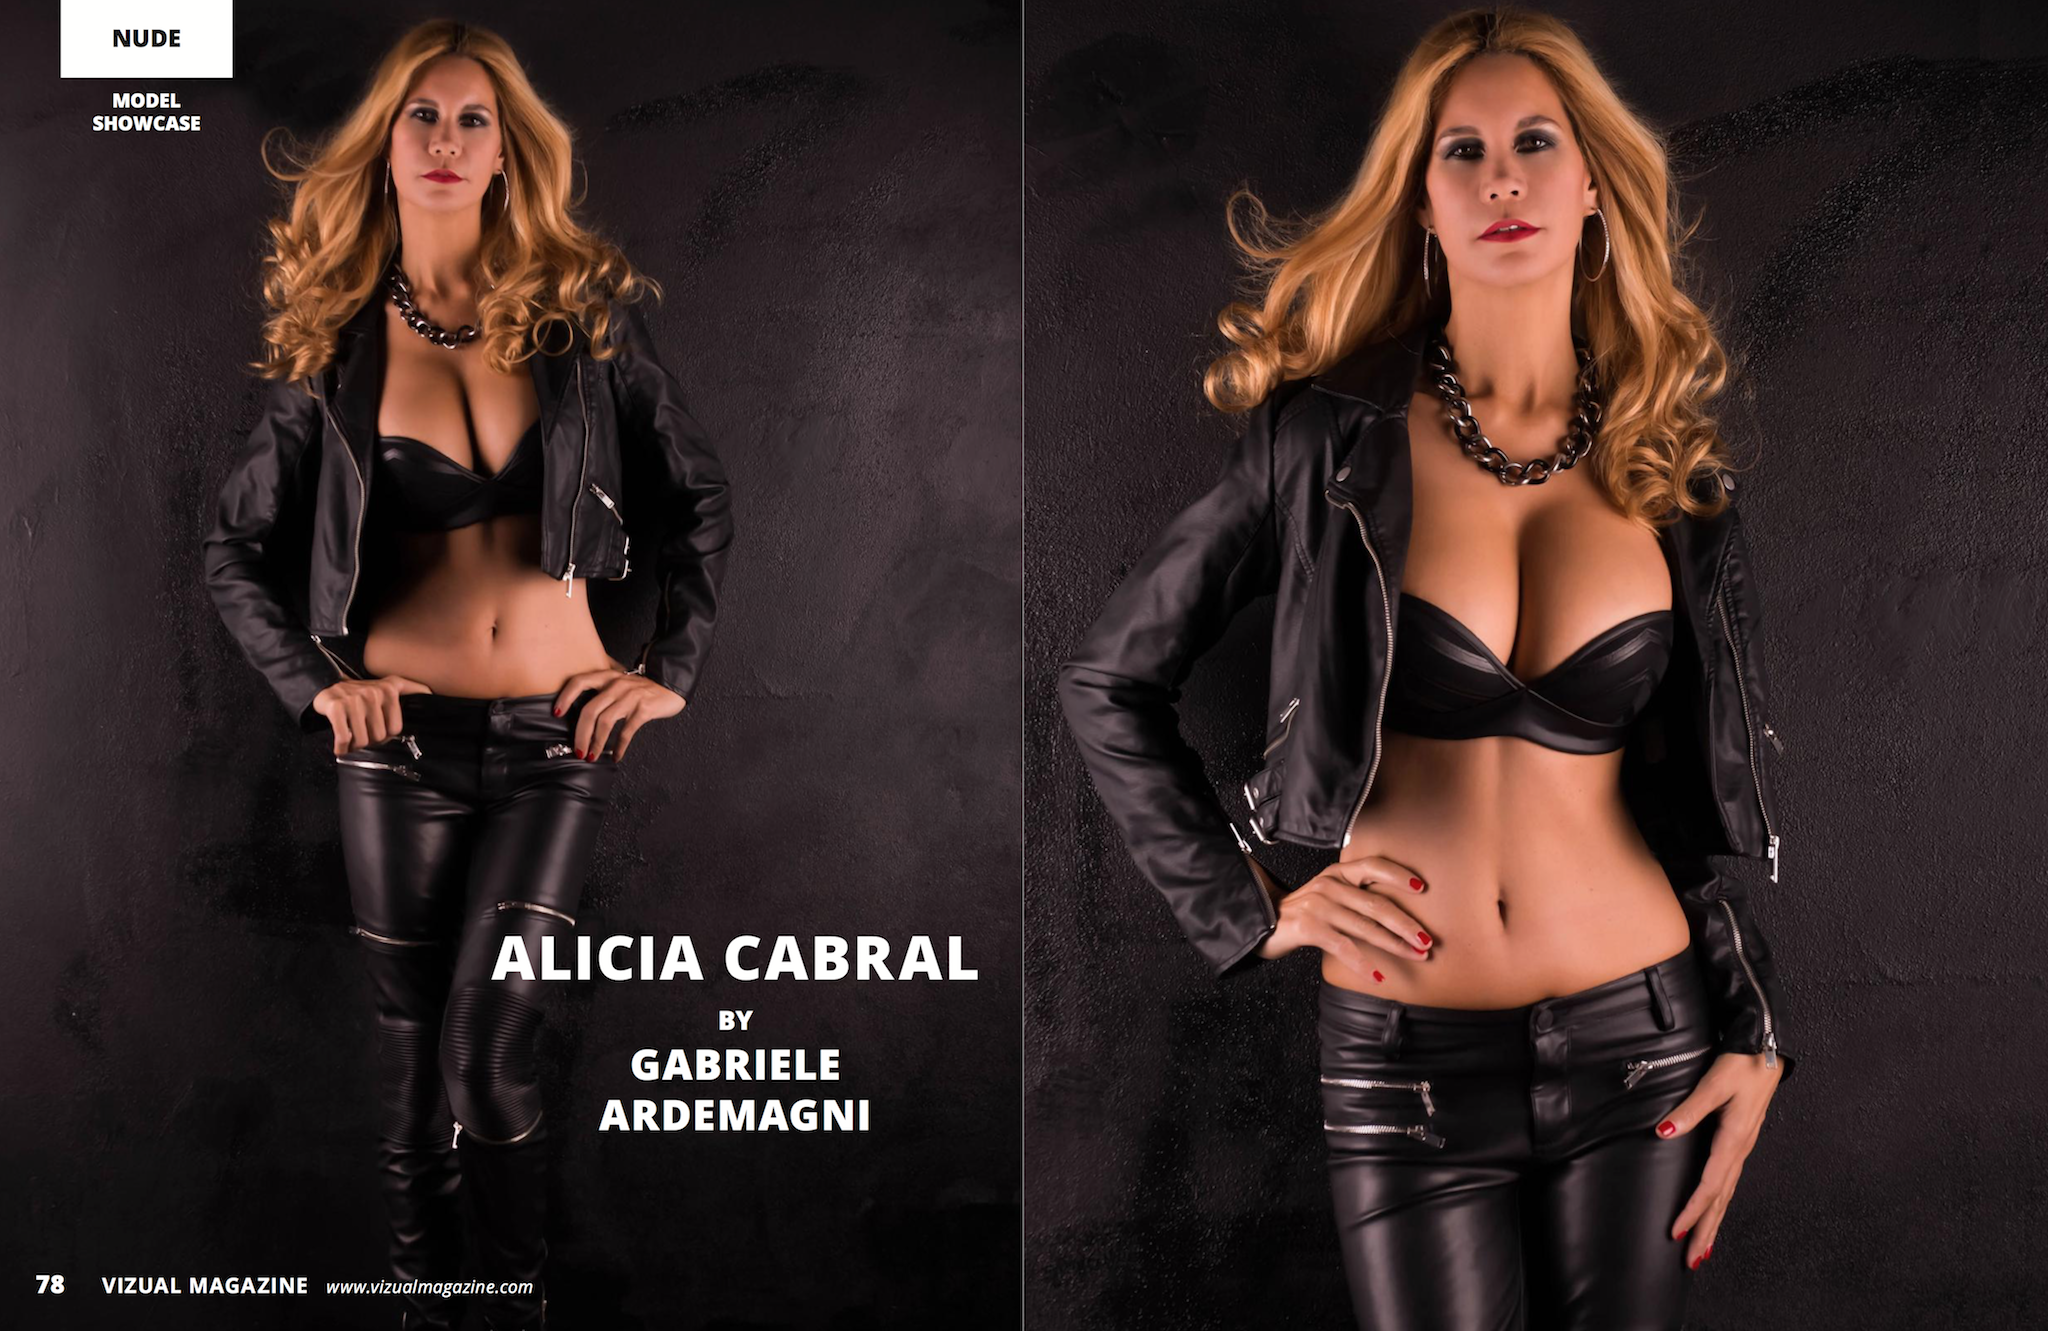 Visual Magazine 19 Aug 2016 model Alicia Cabral https://www.vizualmagazine.com/issue.php?vol=19